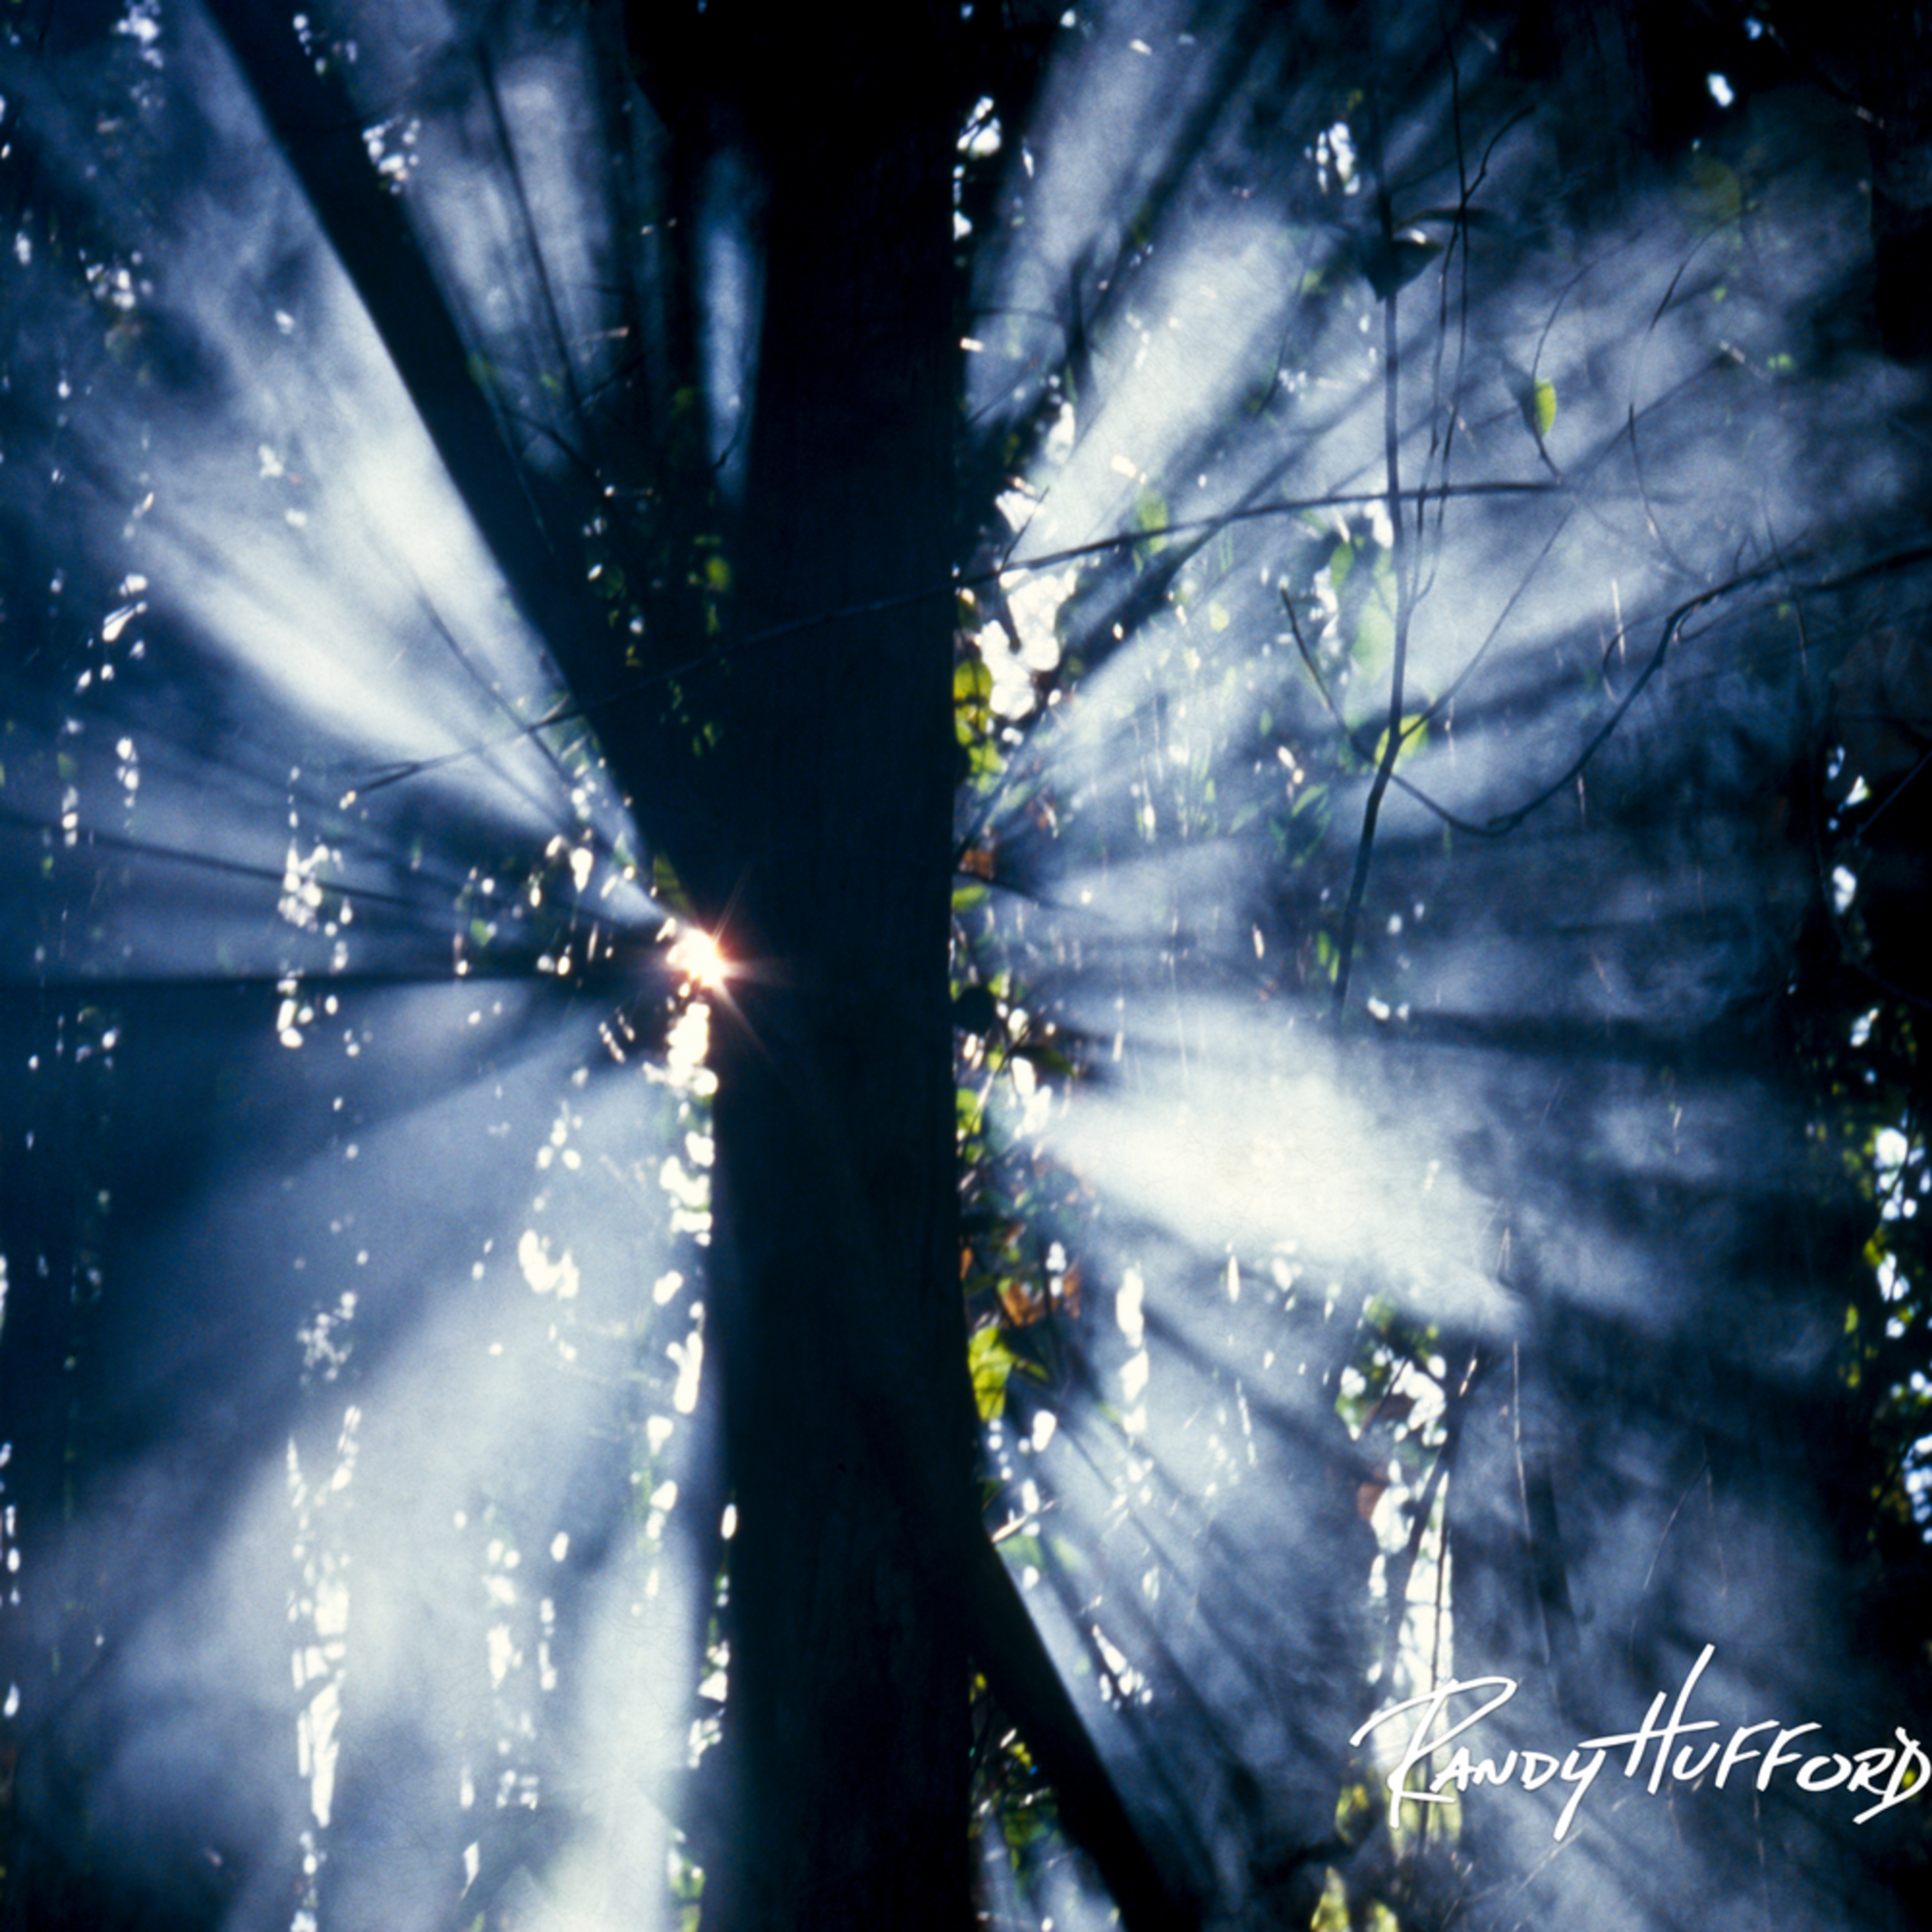 Forest rays ypuic9